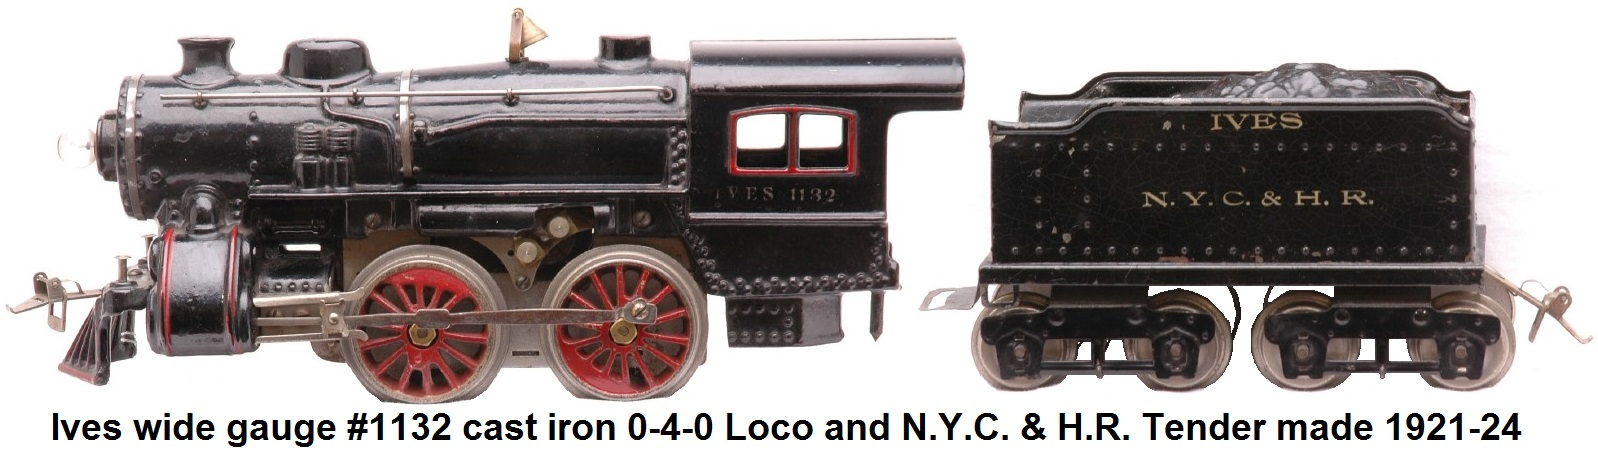 Ives cast iron #1132 0-4-0 Wide gauge electric steam outline locomotive and N.Y.C. & H.R. tender Circa 1921-1924